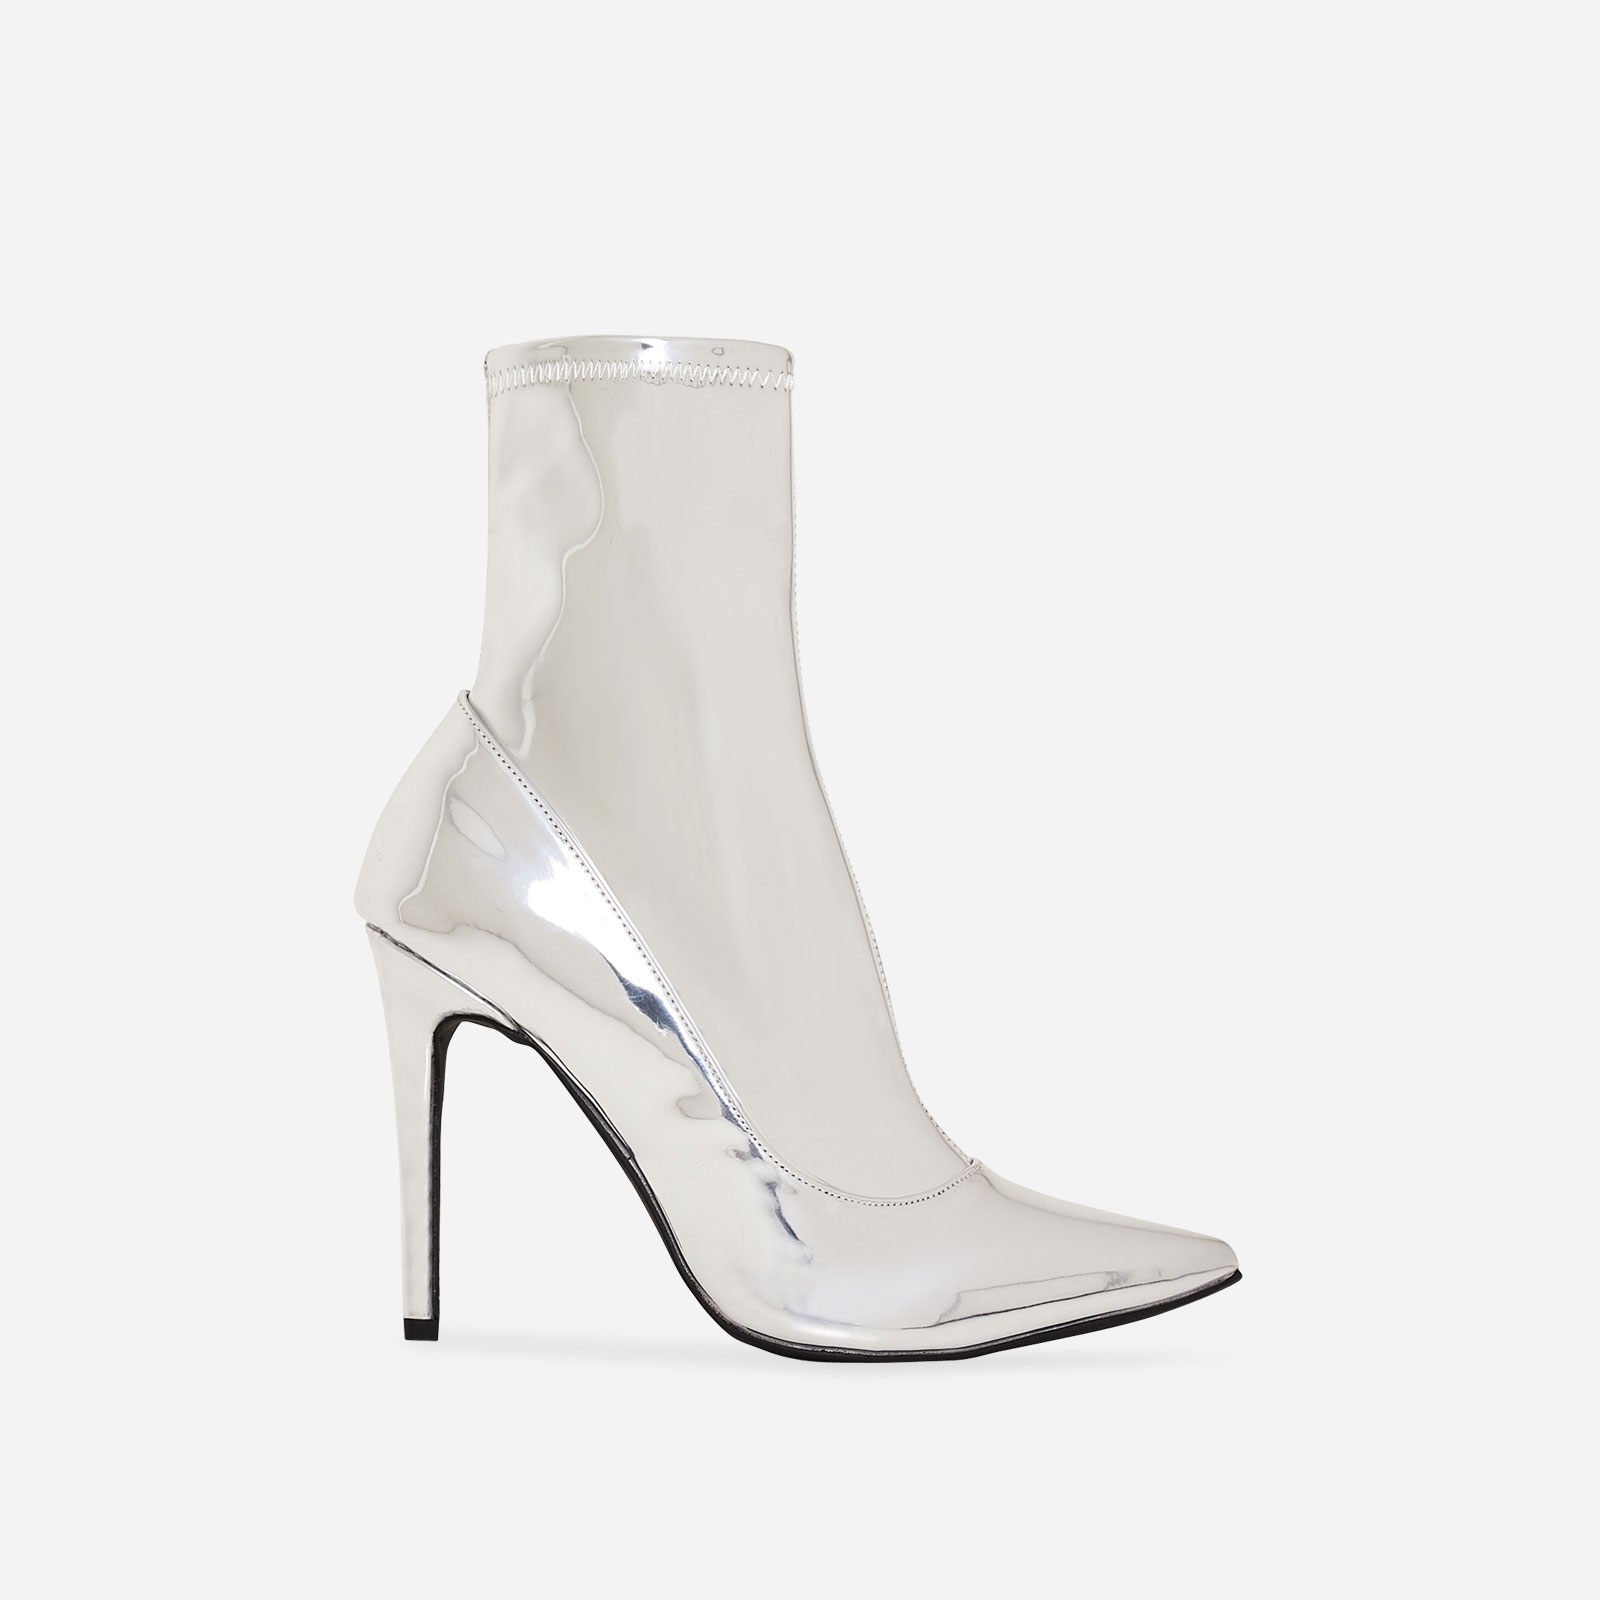 Hadley Pointed Toe Ankle Boot In Metallic Silver Faux Leather